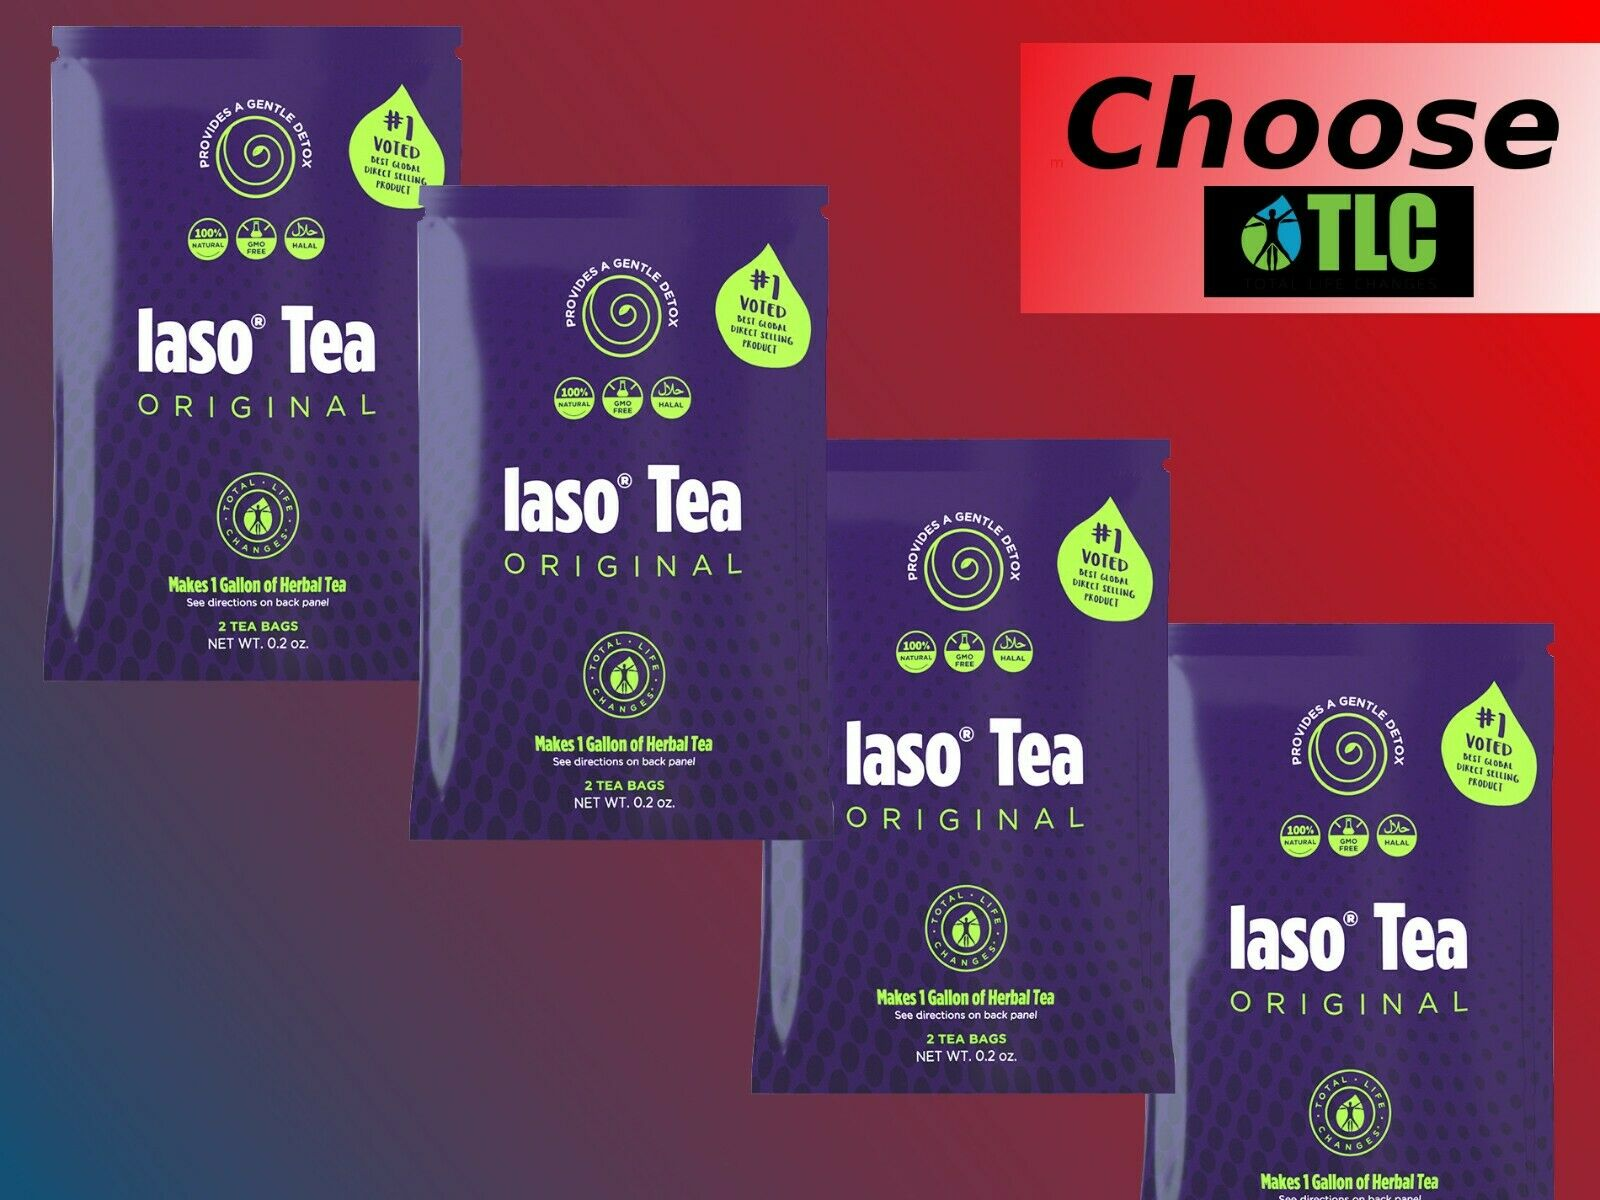 1-4 MONTH SUPPLY IASO TEA - Detox WEIGHT LOSS DIET Total Life Changes (TLC)